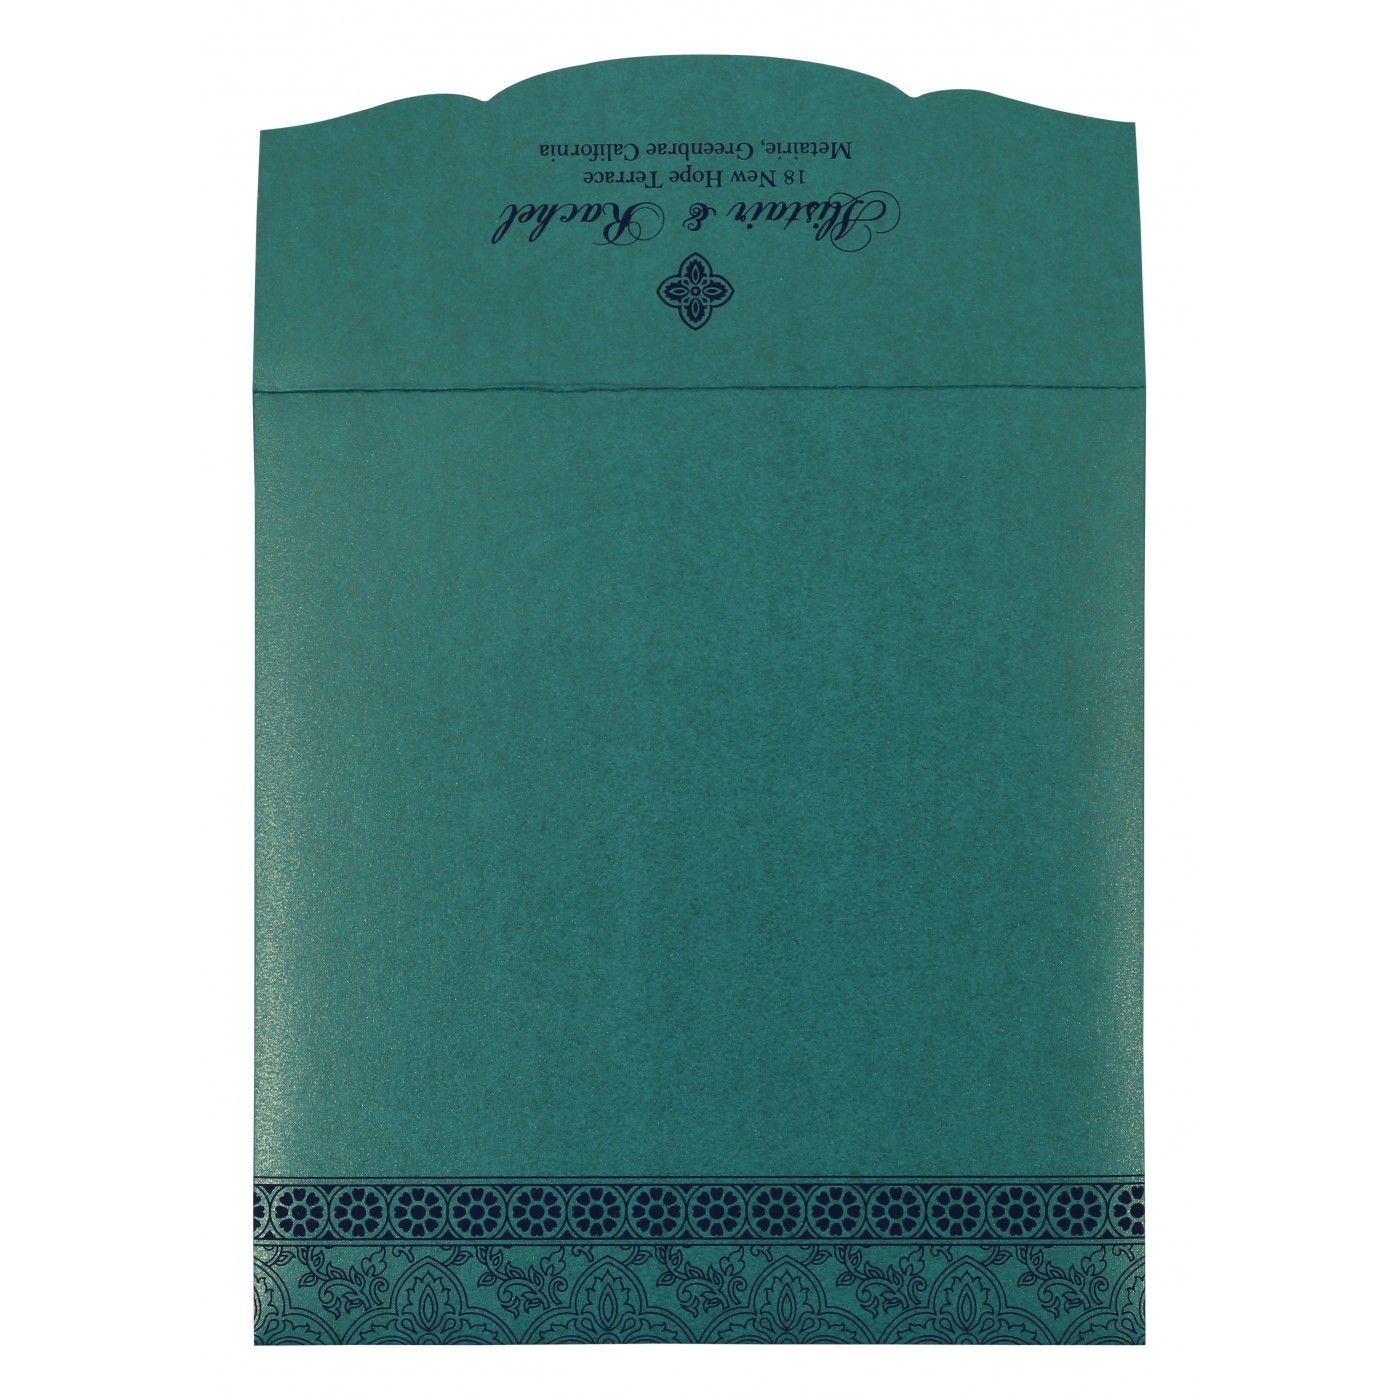 TURQUOISE SHIMMERY SCREEN PRINTED WEDDING INVITATION : CG-800D - IndianWeddingCards